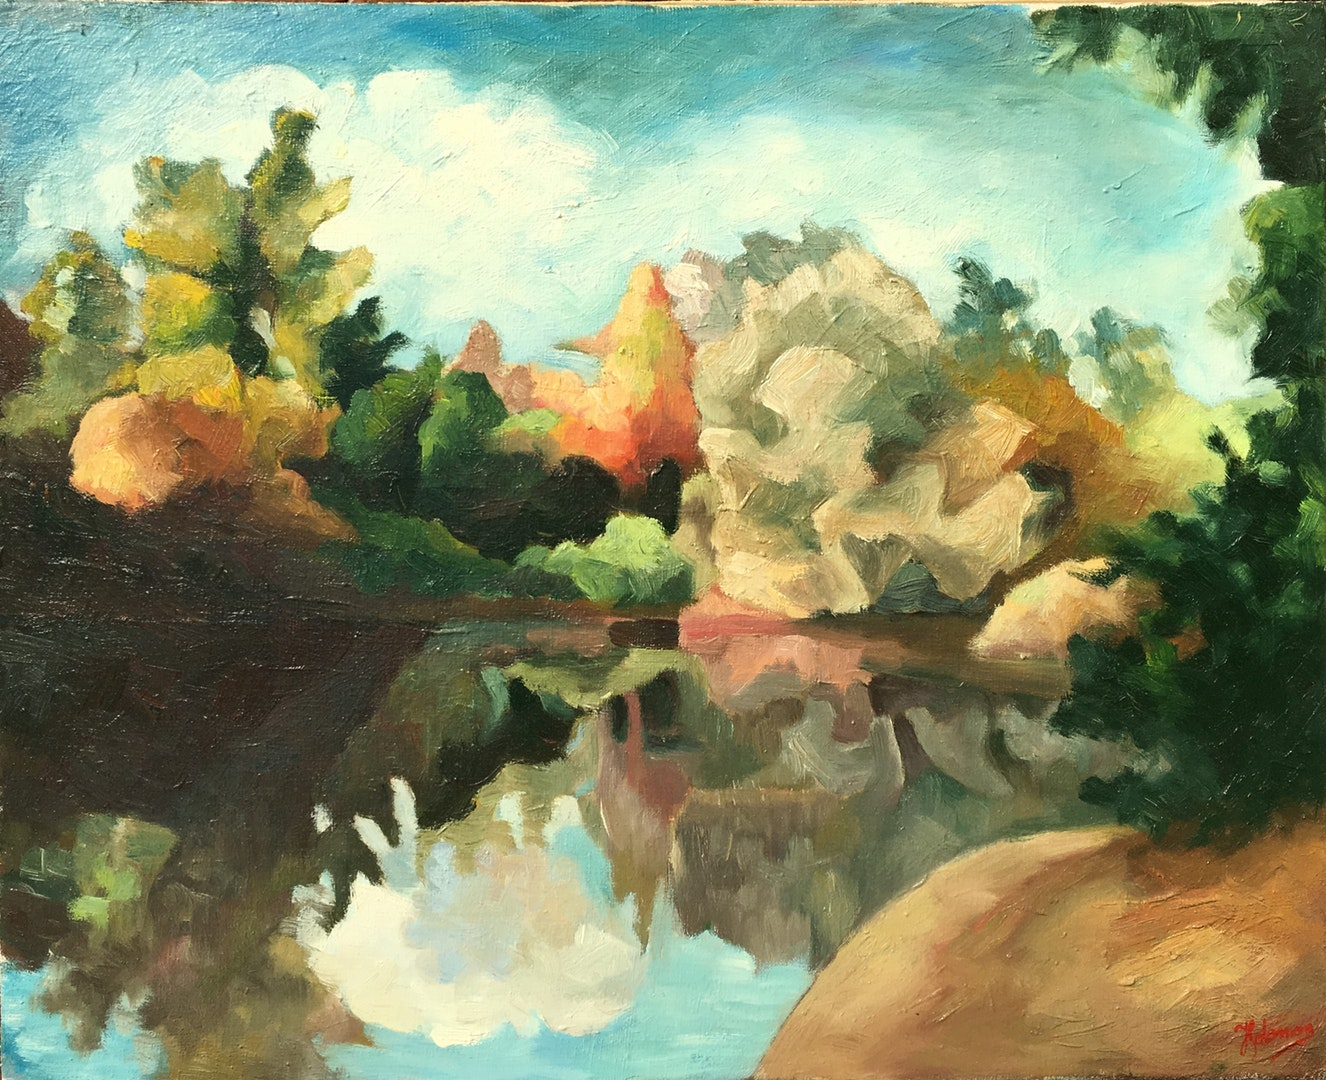 'Pond in Autumn'', Horia Solomon, Oil on canvas, 55 x 45 cm